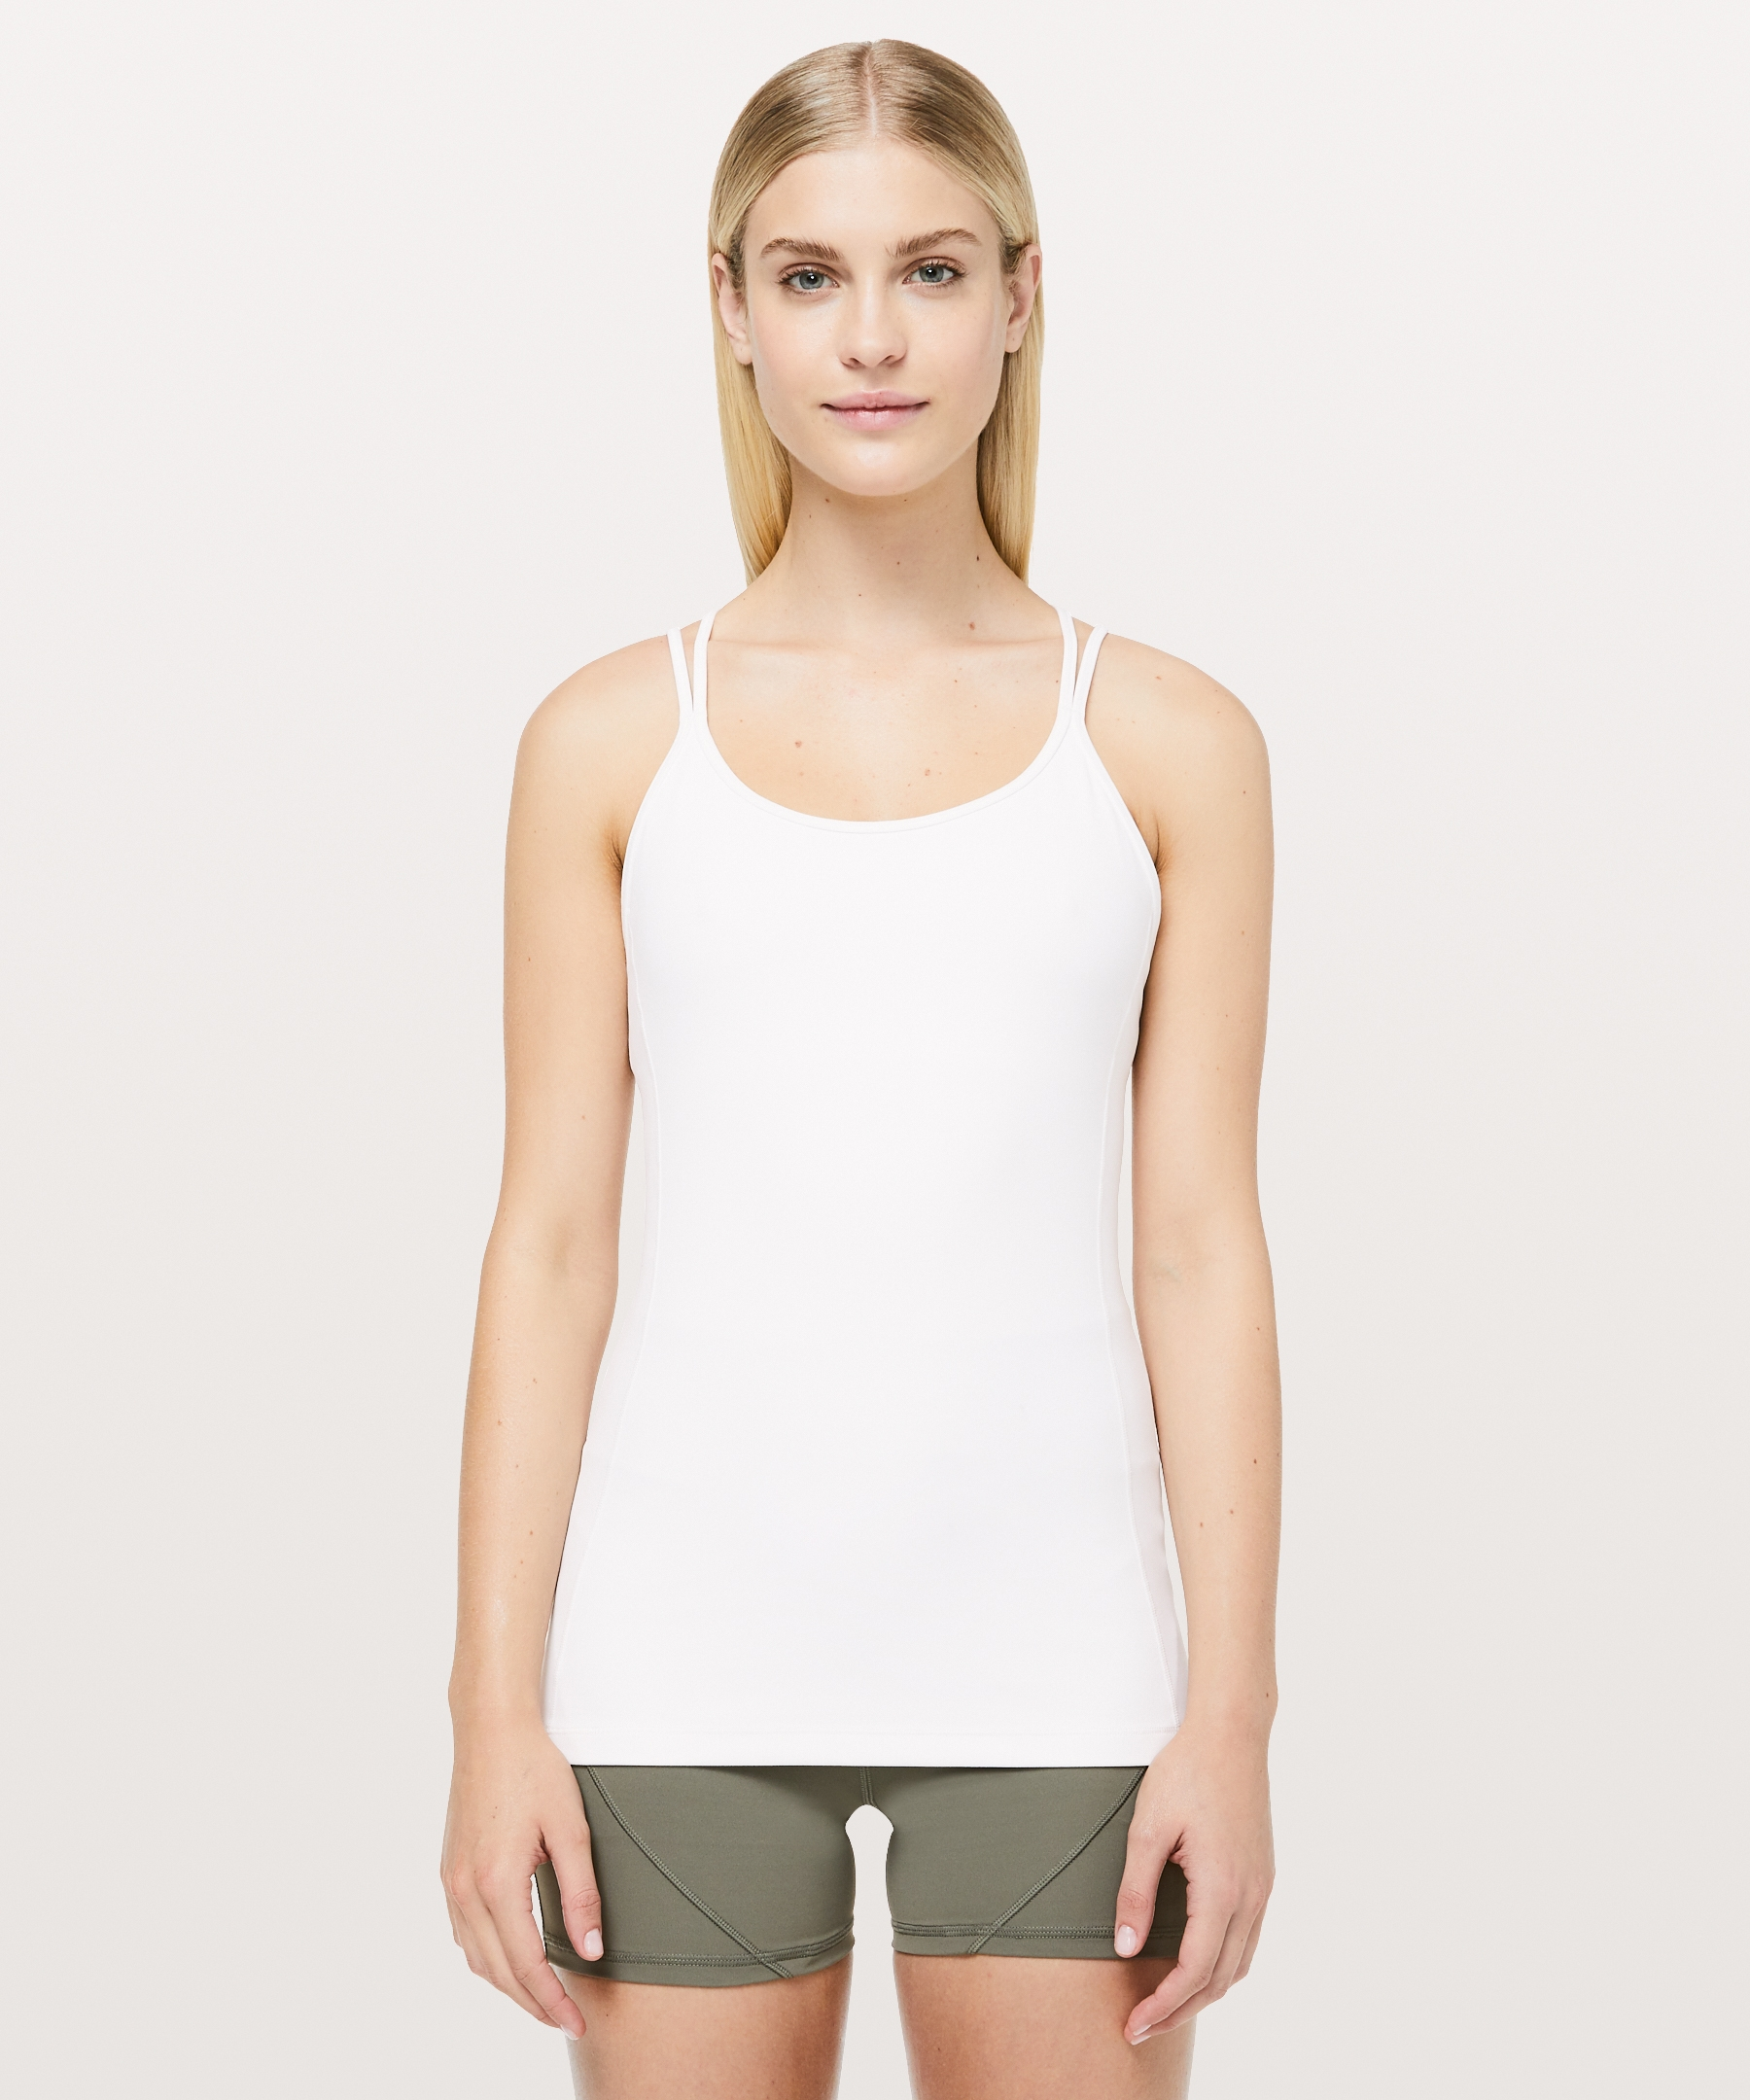 14+ Tank tops with built in bra support ideas